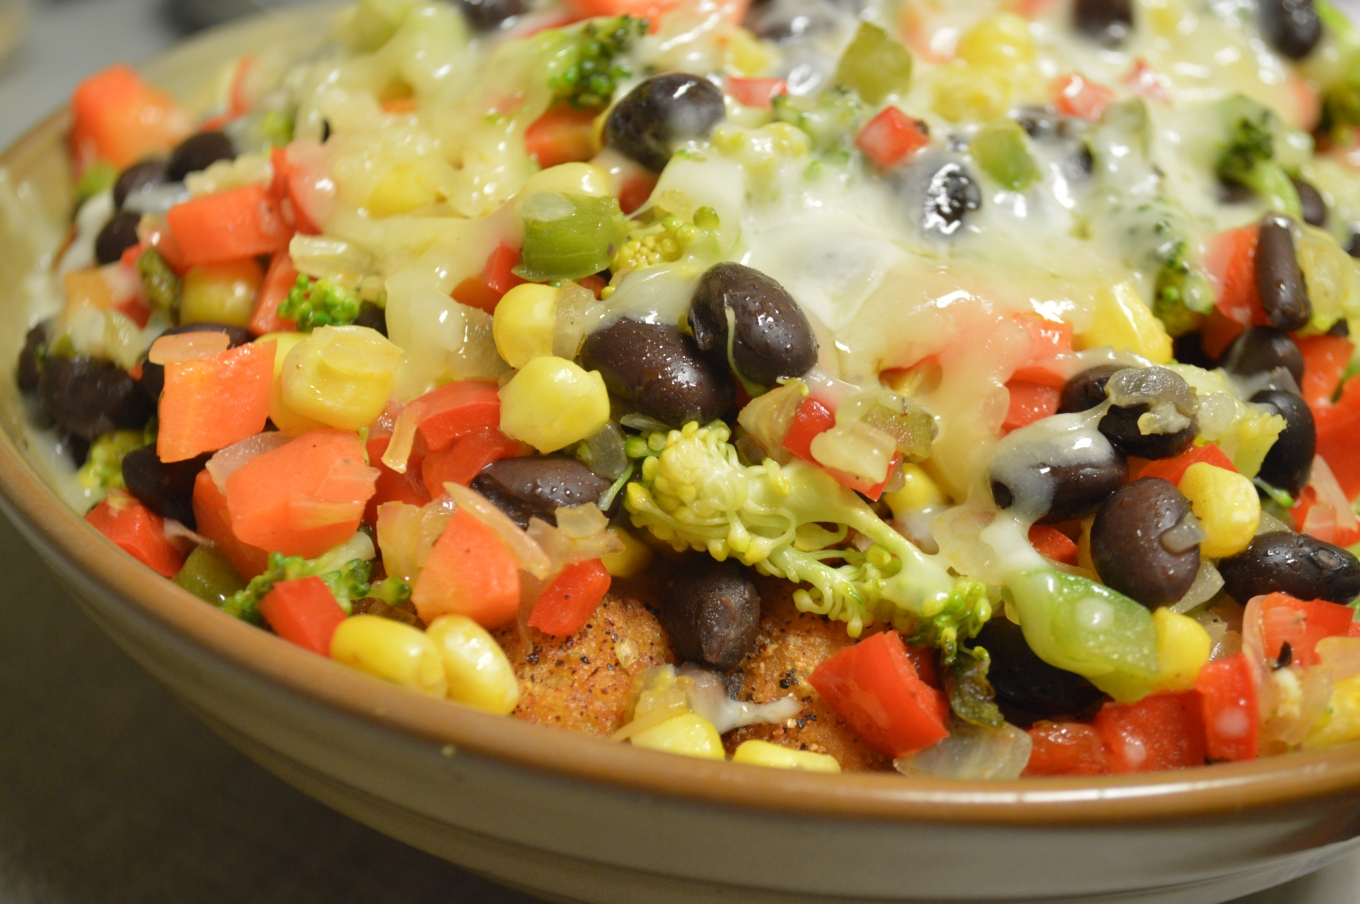 Image shows a bowl with seasoned browned tater tots, black beans, corn, sauteed red bell pepper, roasted poblano peppers, sauteed green bell peppers and onions, steamed broccoli and carrots. The vegetables are layered with the seasoned tots and cheese, melted across the top and in the center